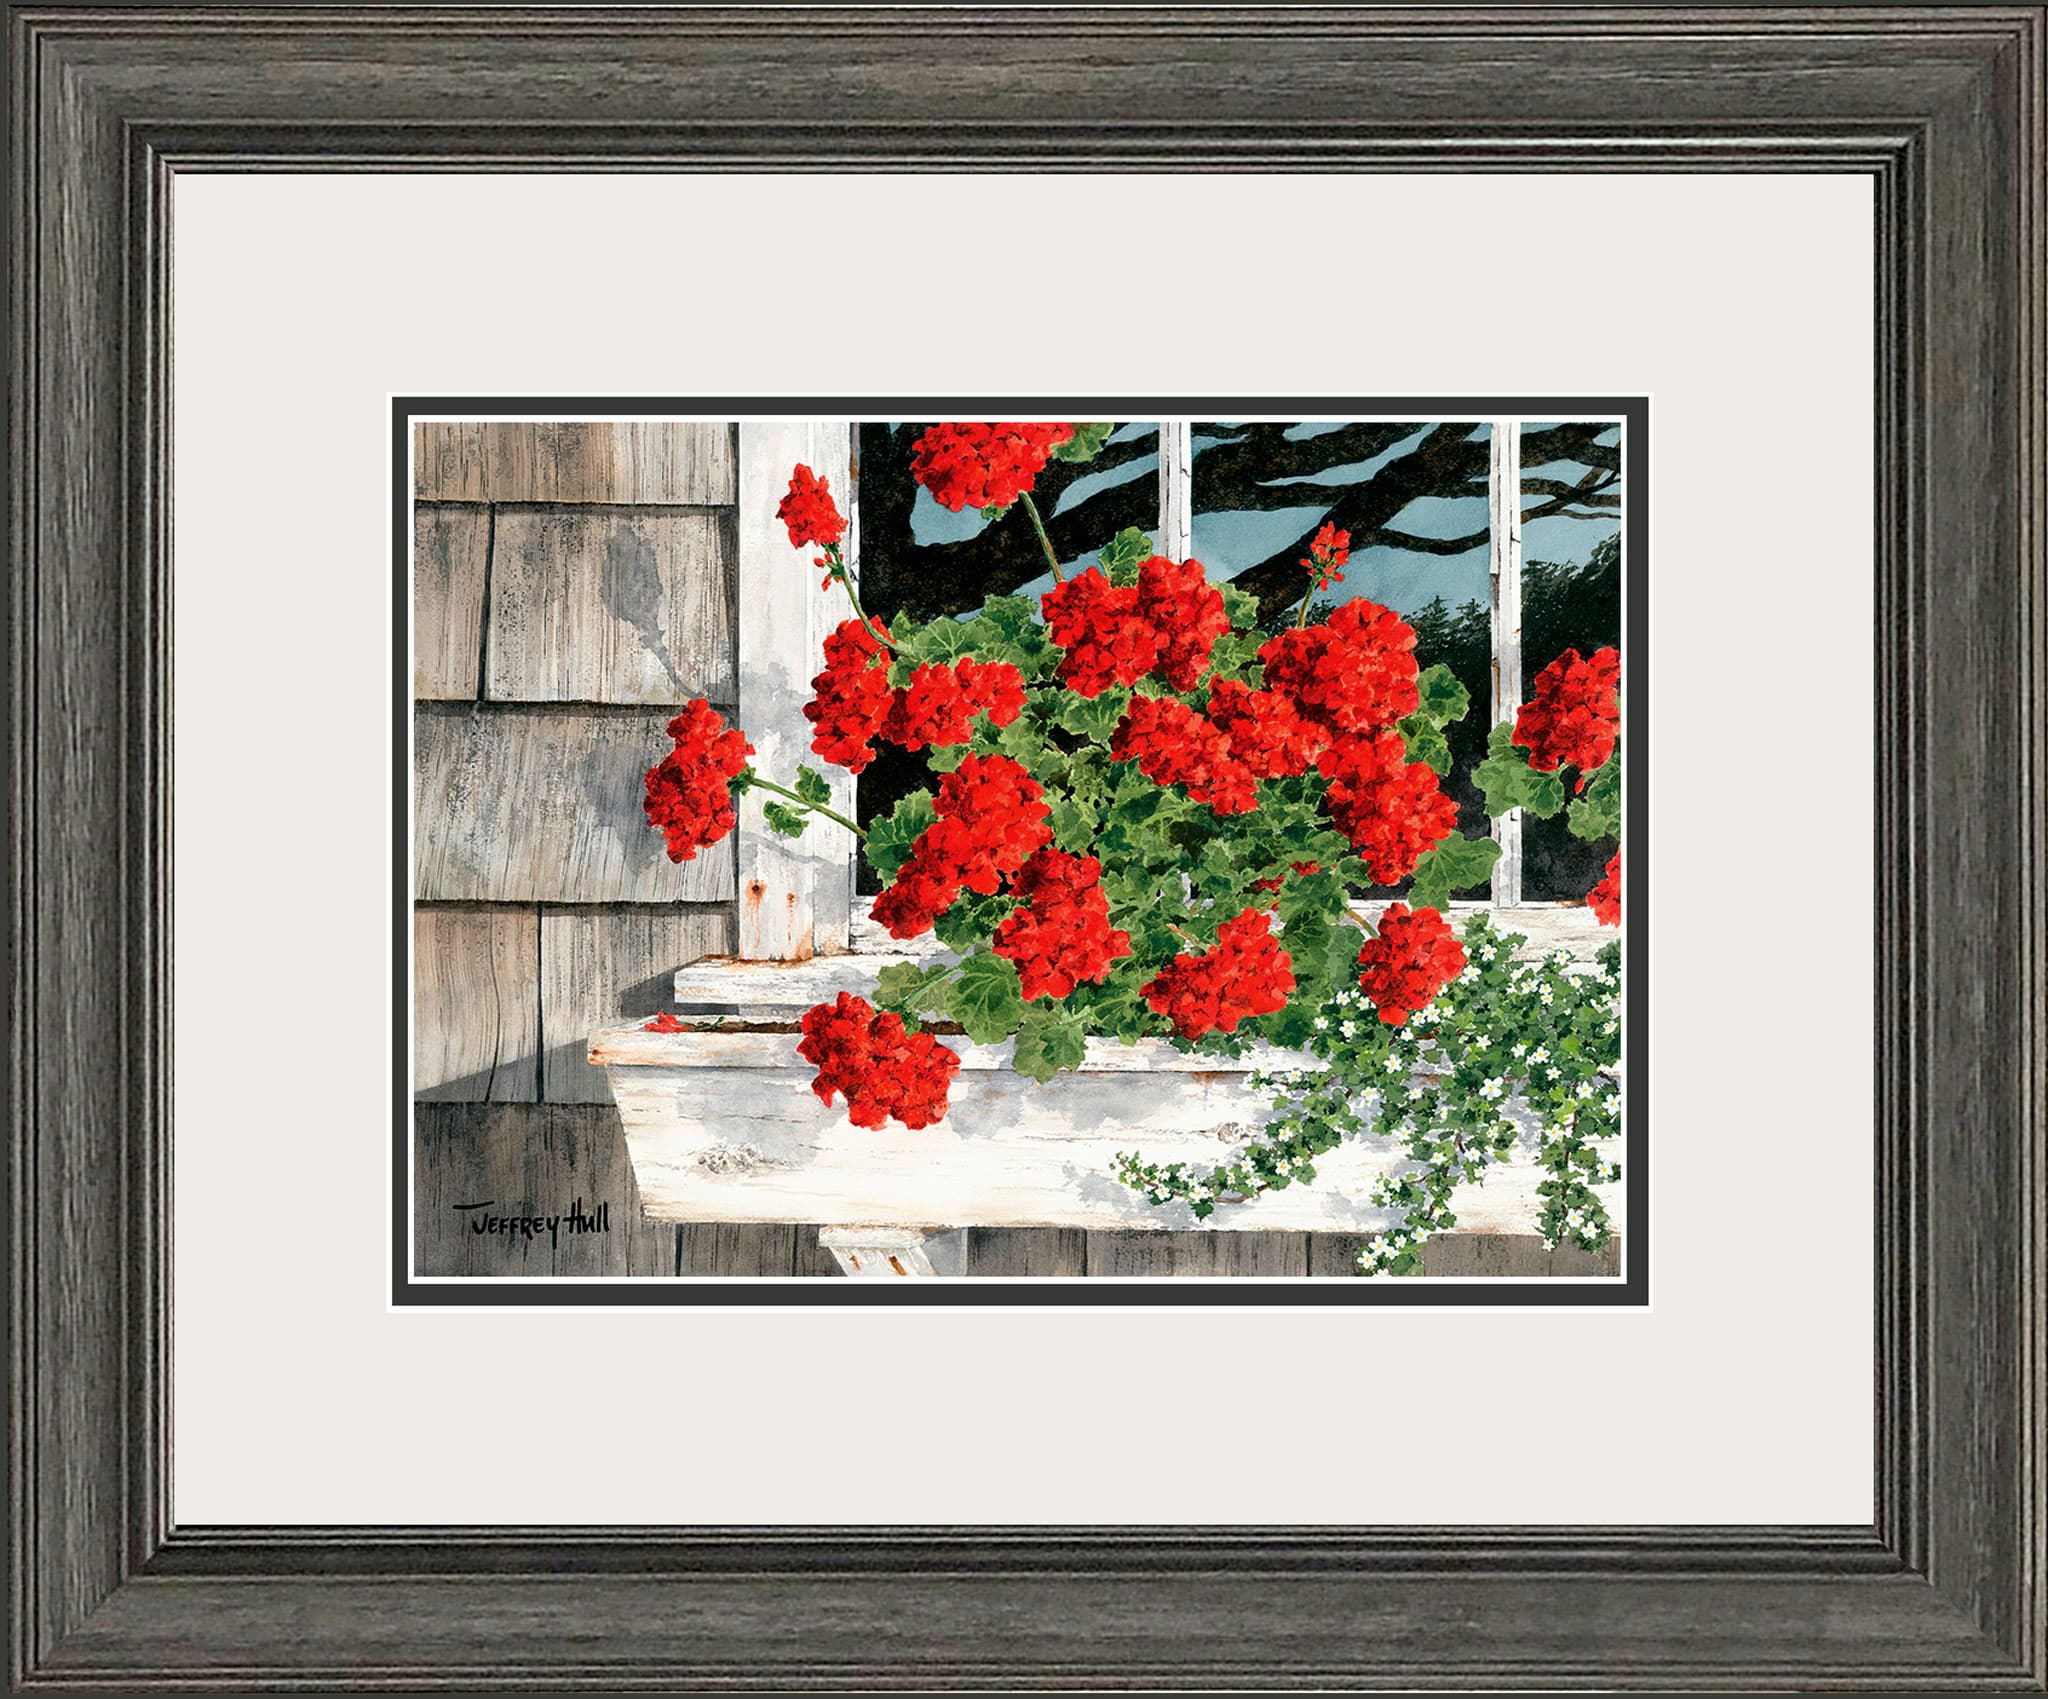 Carol_s-Geraniums-OpenEd-Cascade-Talc-Dark-Shale-4-Website-2021